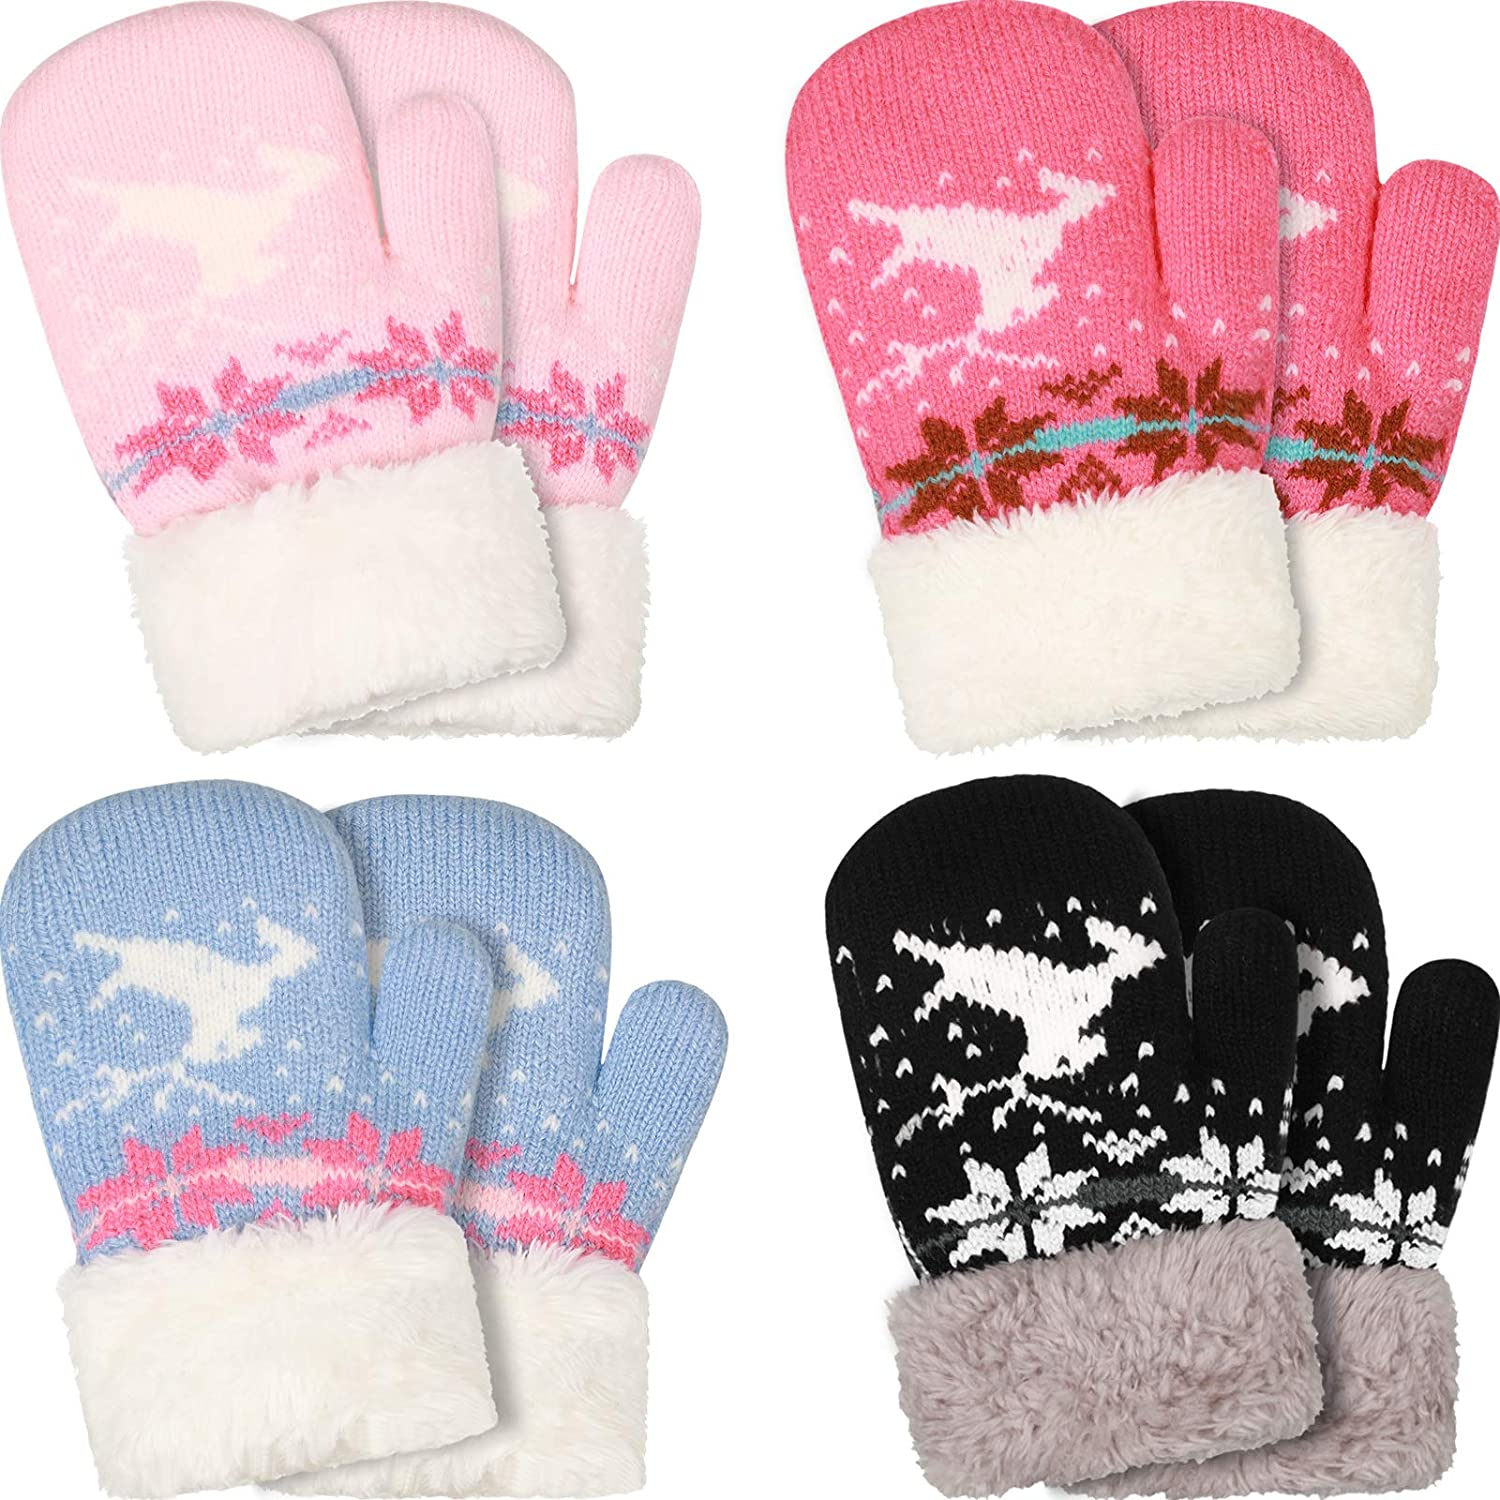 4 Pairs Kids Winter Sherpa Mitten Gloves Knit Thick Gloves Cute Reindeer Snowflake Gloves for Boys Girls Toddler